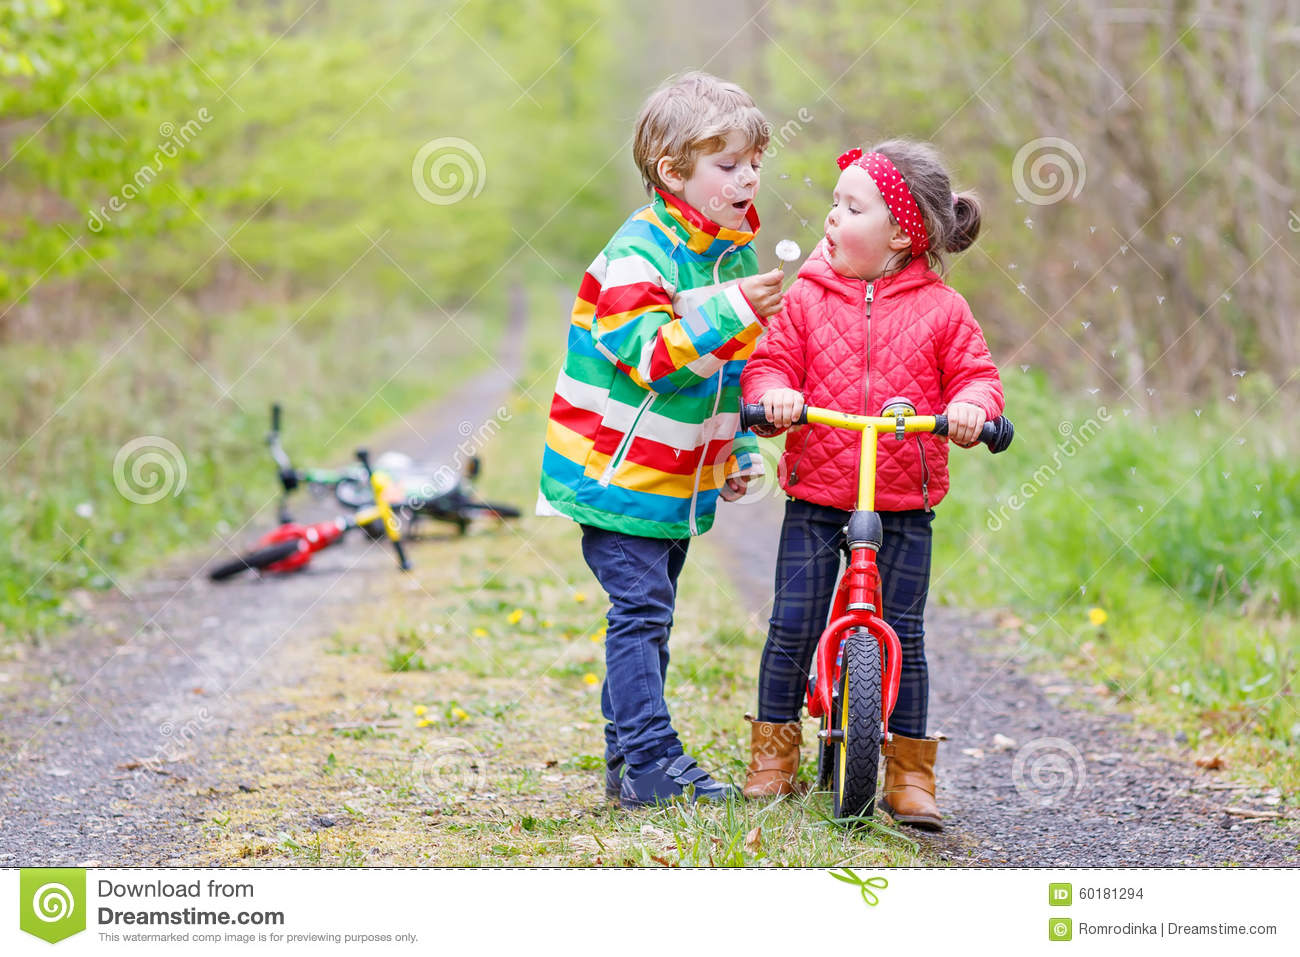 be09cec80 Little Girl And Boy Playing Together In Forest Stock Photo - Image ...